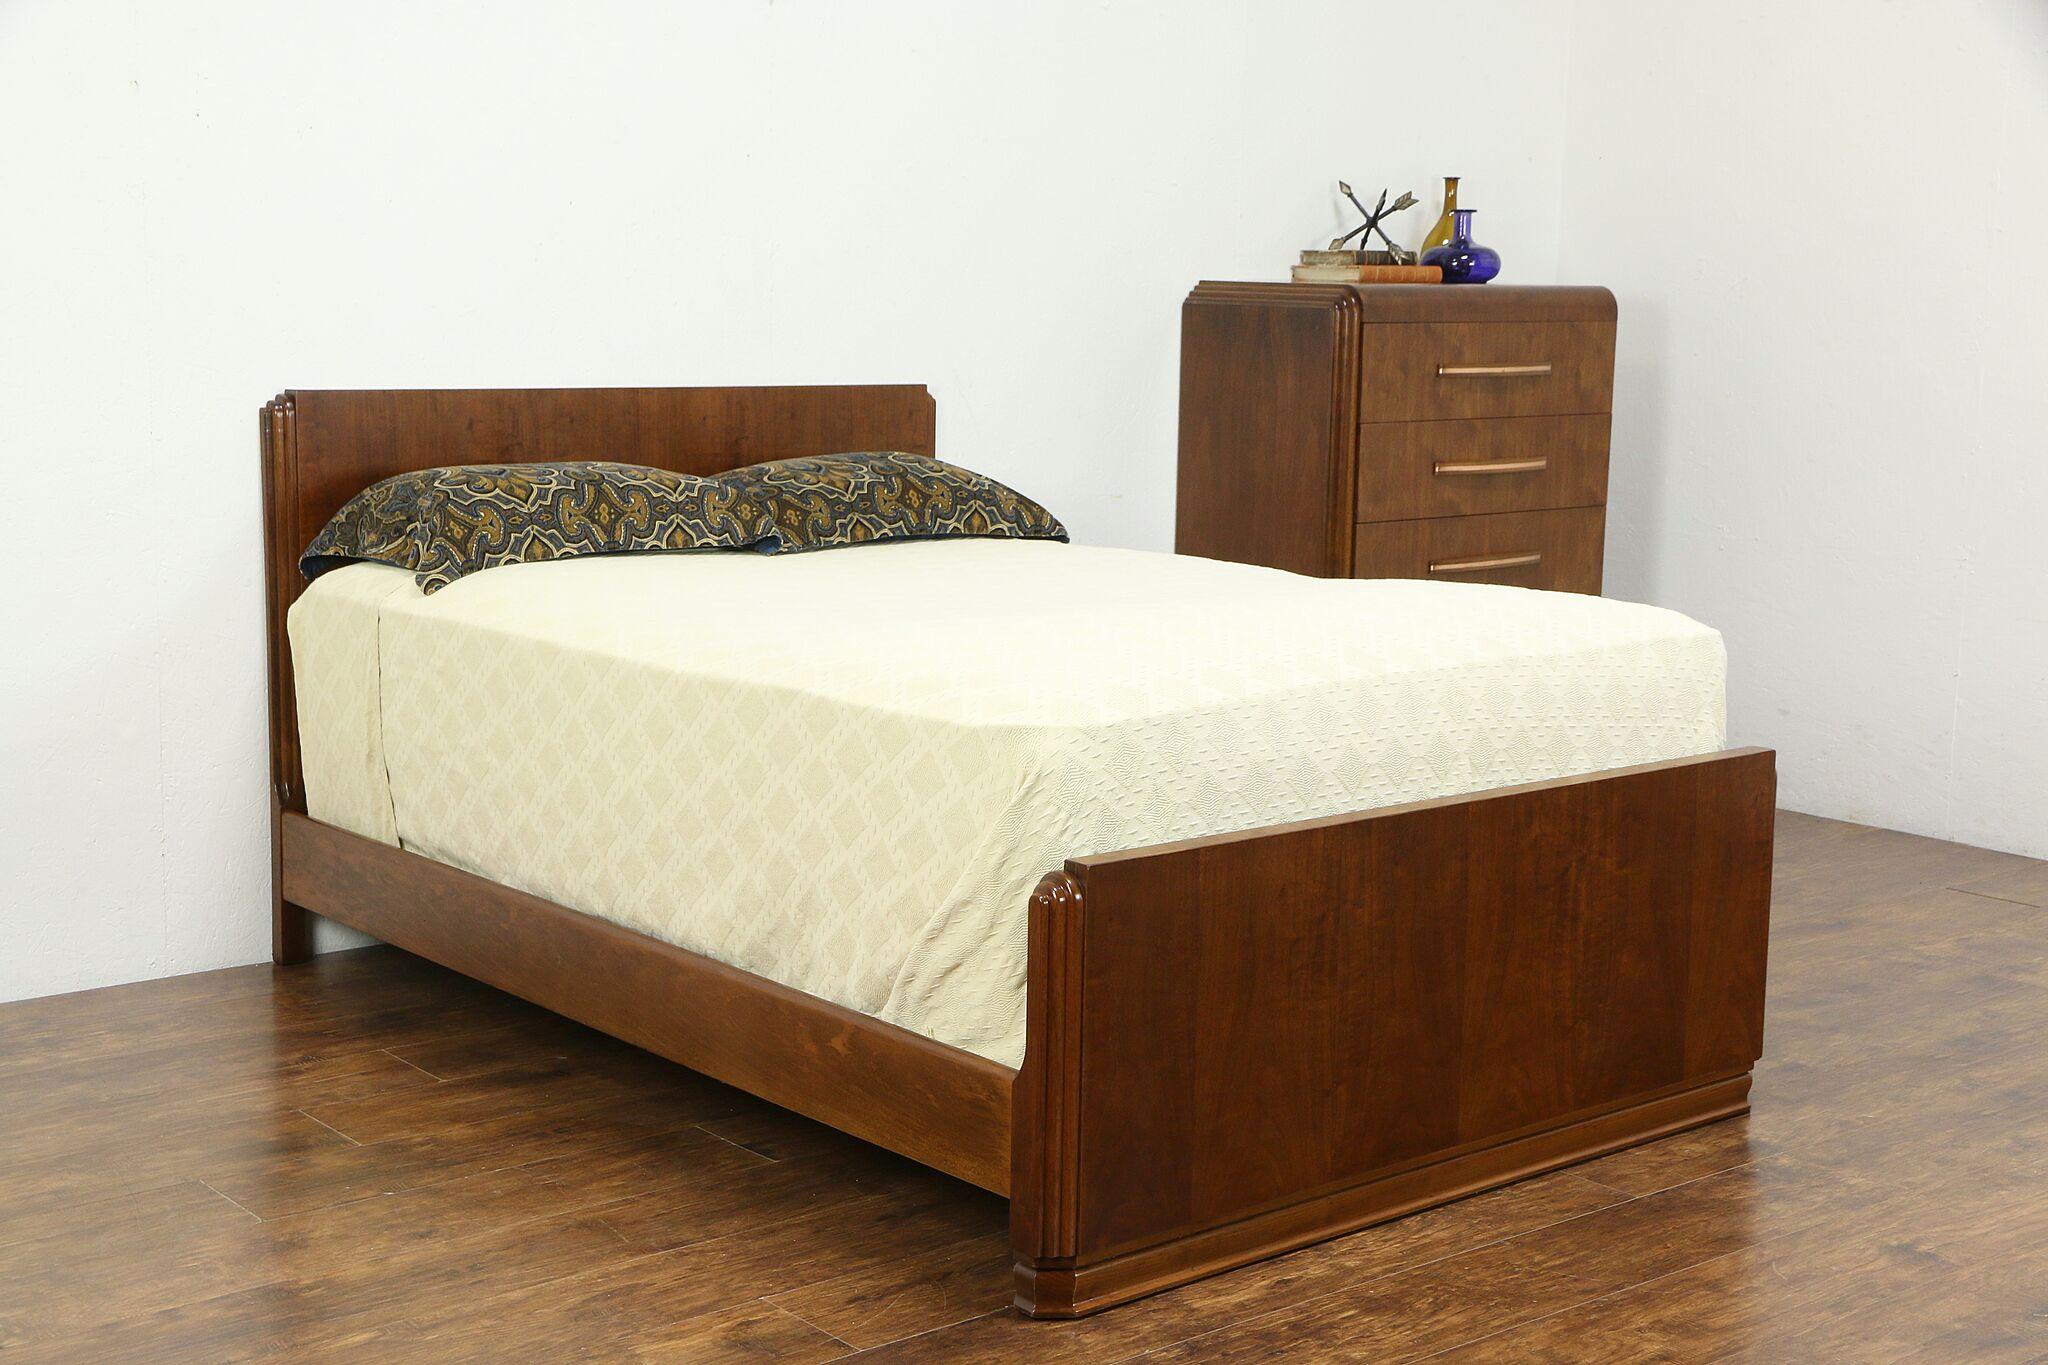 Sold Art Deco Midcentury Modern Bedroom Set Tall Chest Full Size Bed 35353 Harp Gallery Antiques Furniture